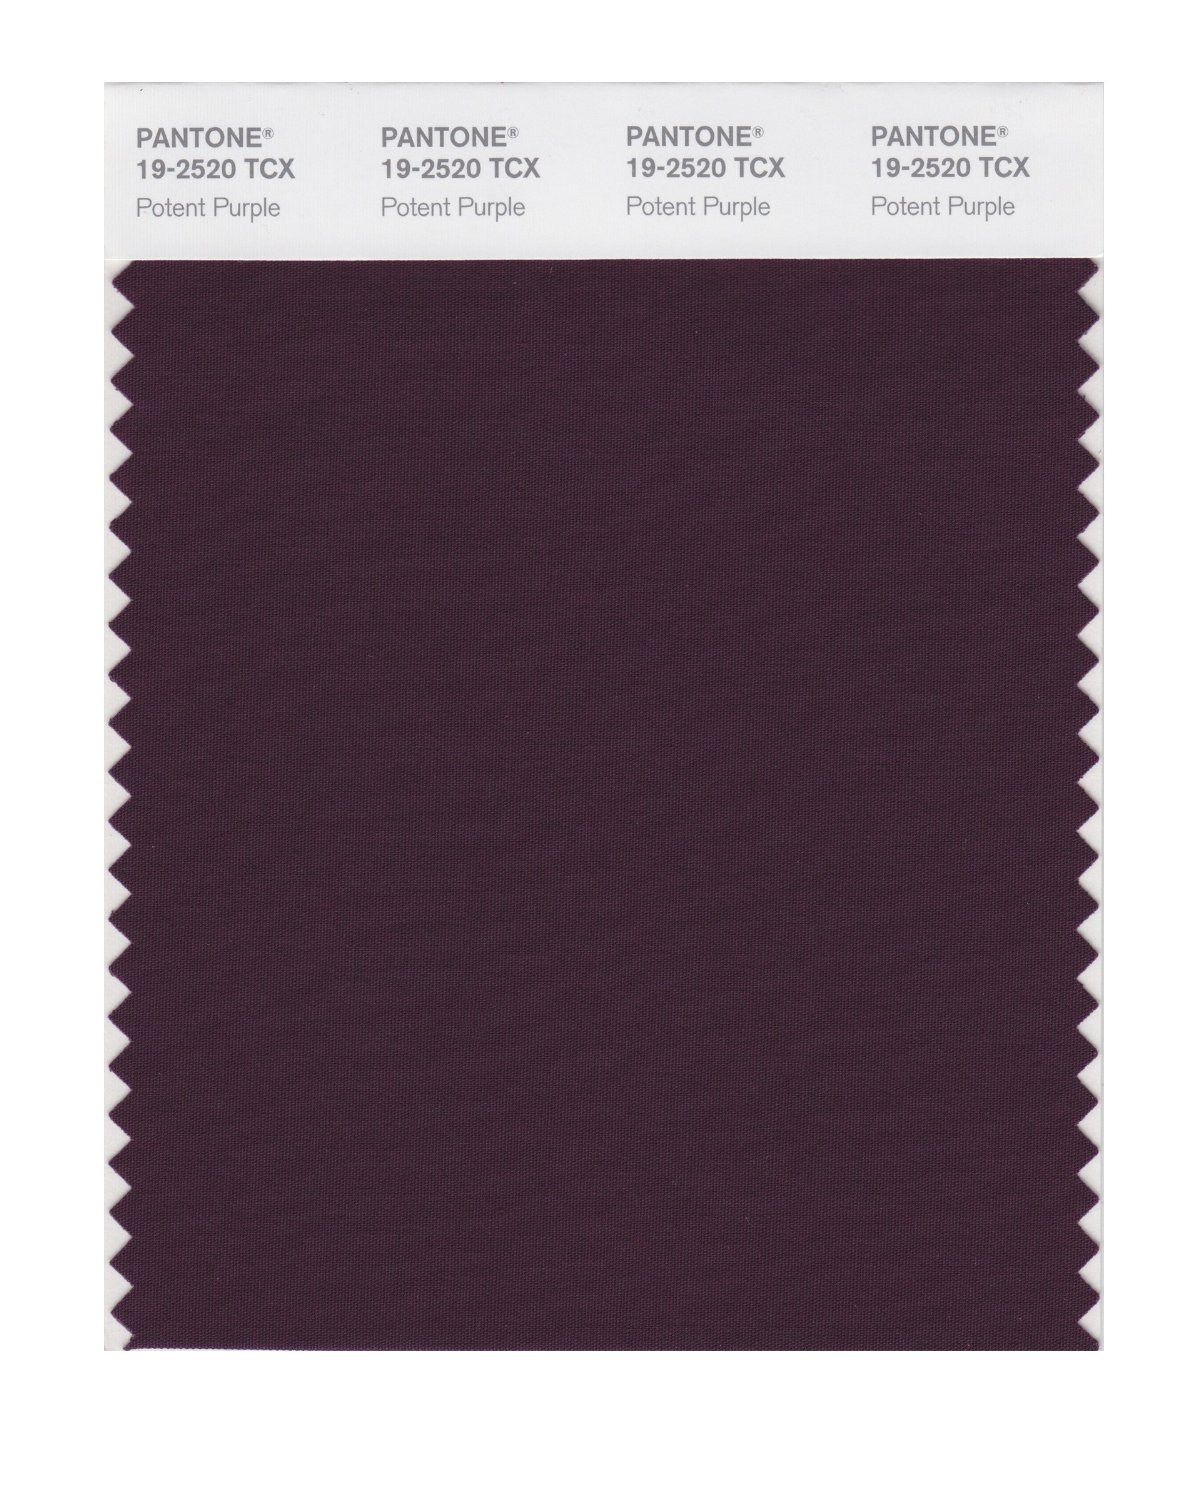 Pantone Smart Swatch 19-2520 Potent Purple